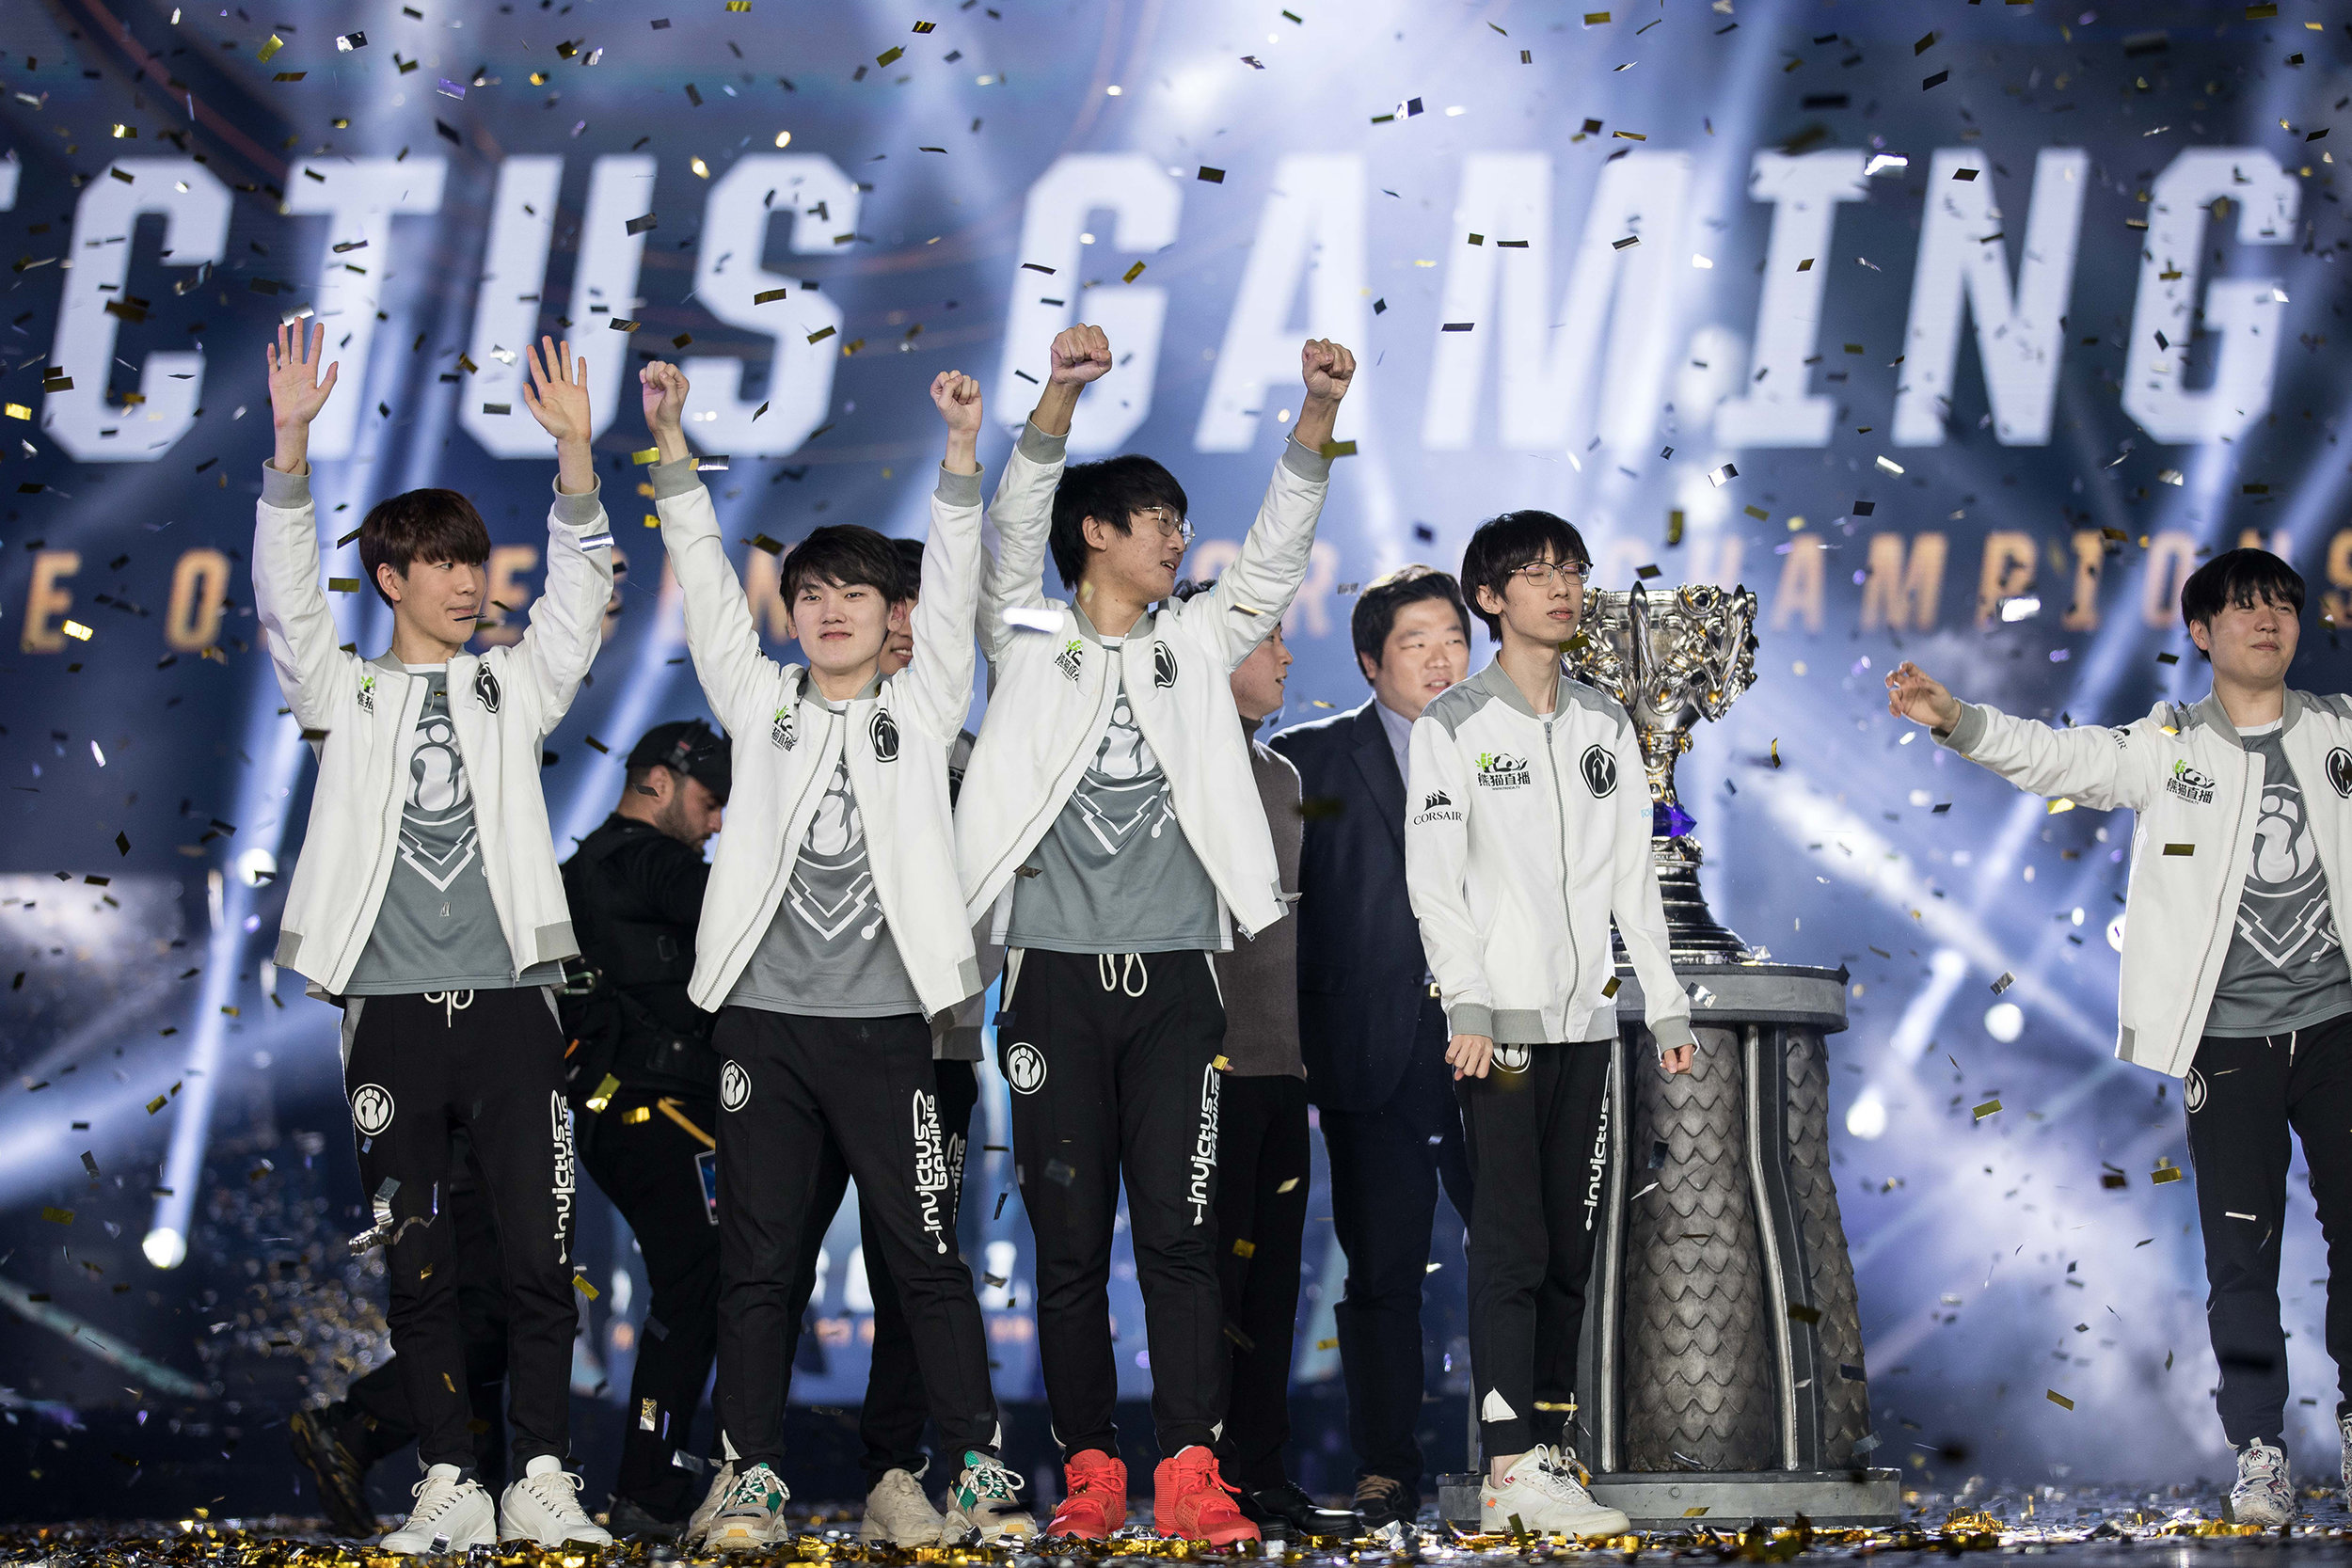 Invictus Gaming celebrating their win onstage at 2018 League of Legends World Championship sponsored by Mastercard on November 3, 2018 in Incheon, South Korea.  Photo by Hannah Smith/ESPAT Media for Mastercard